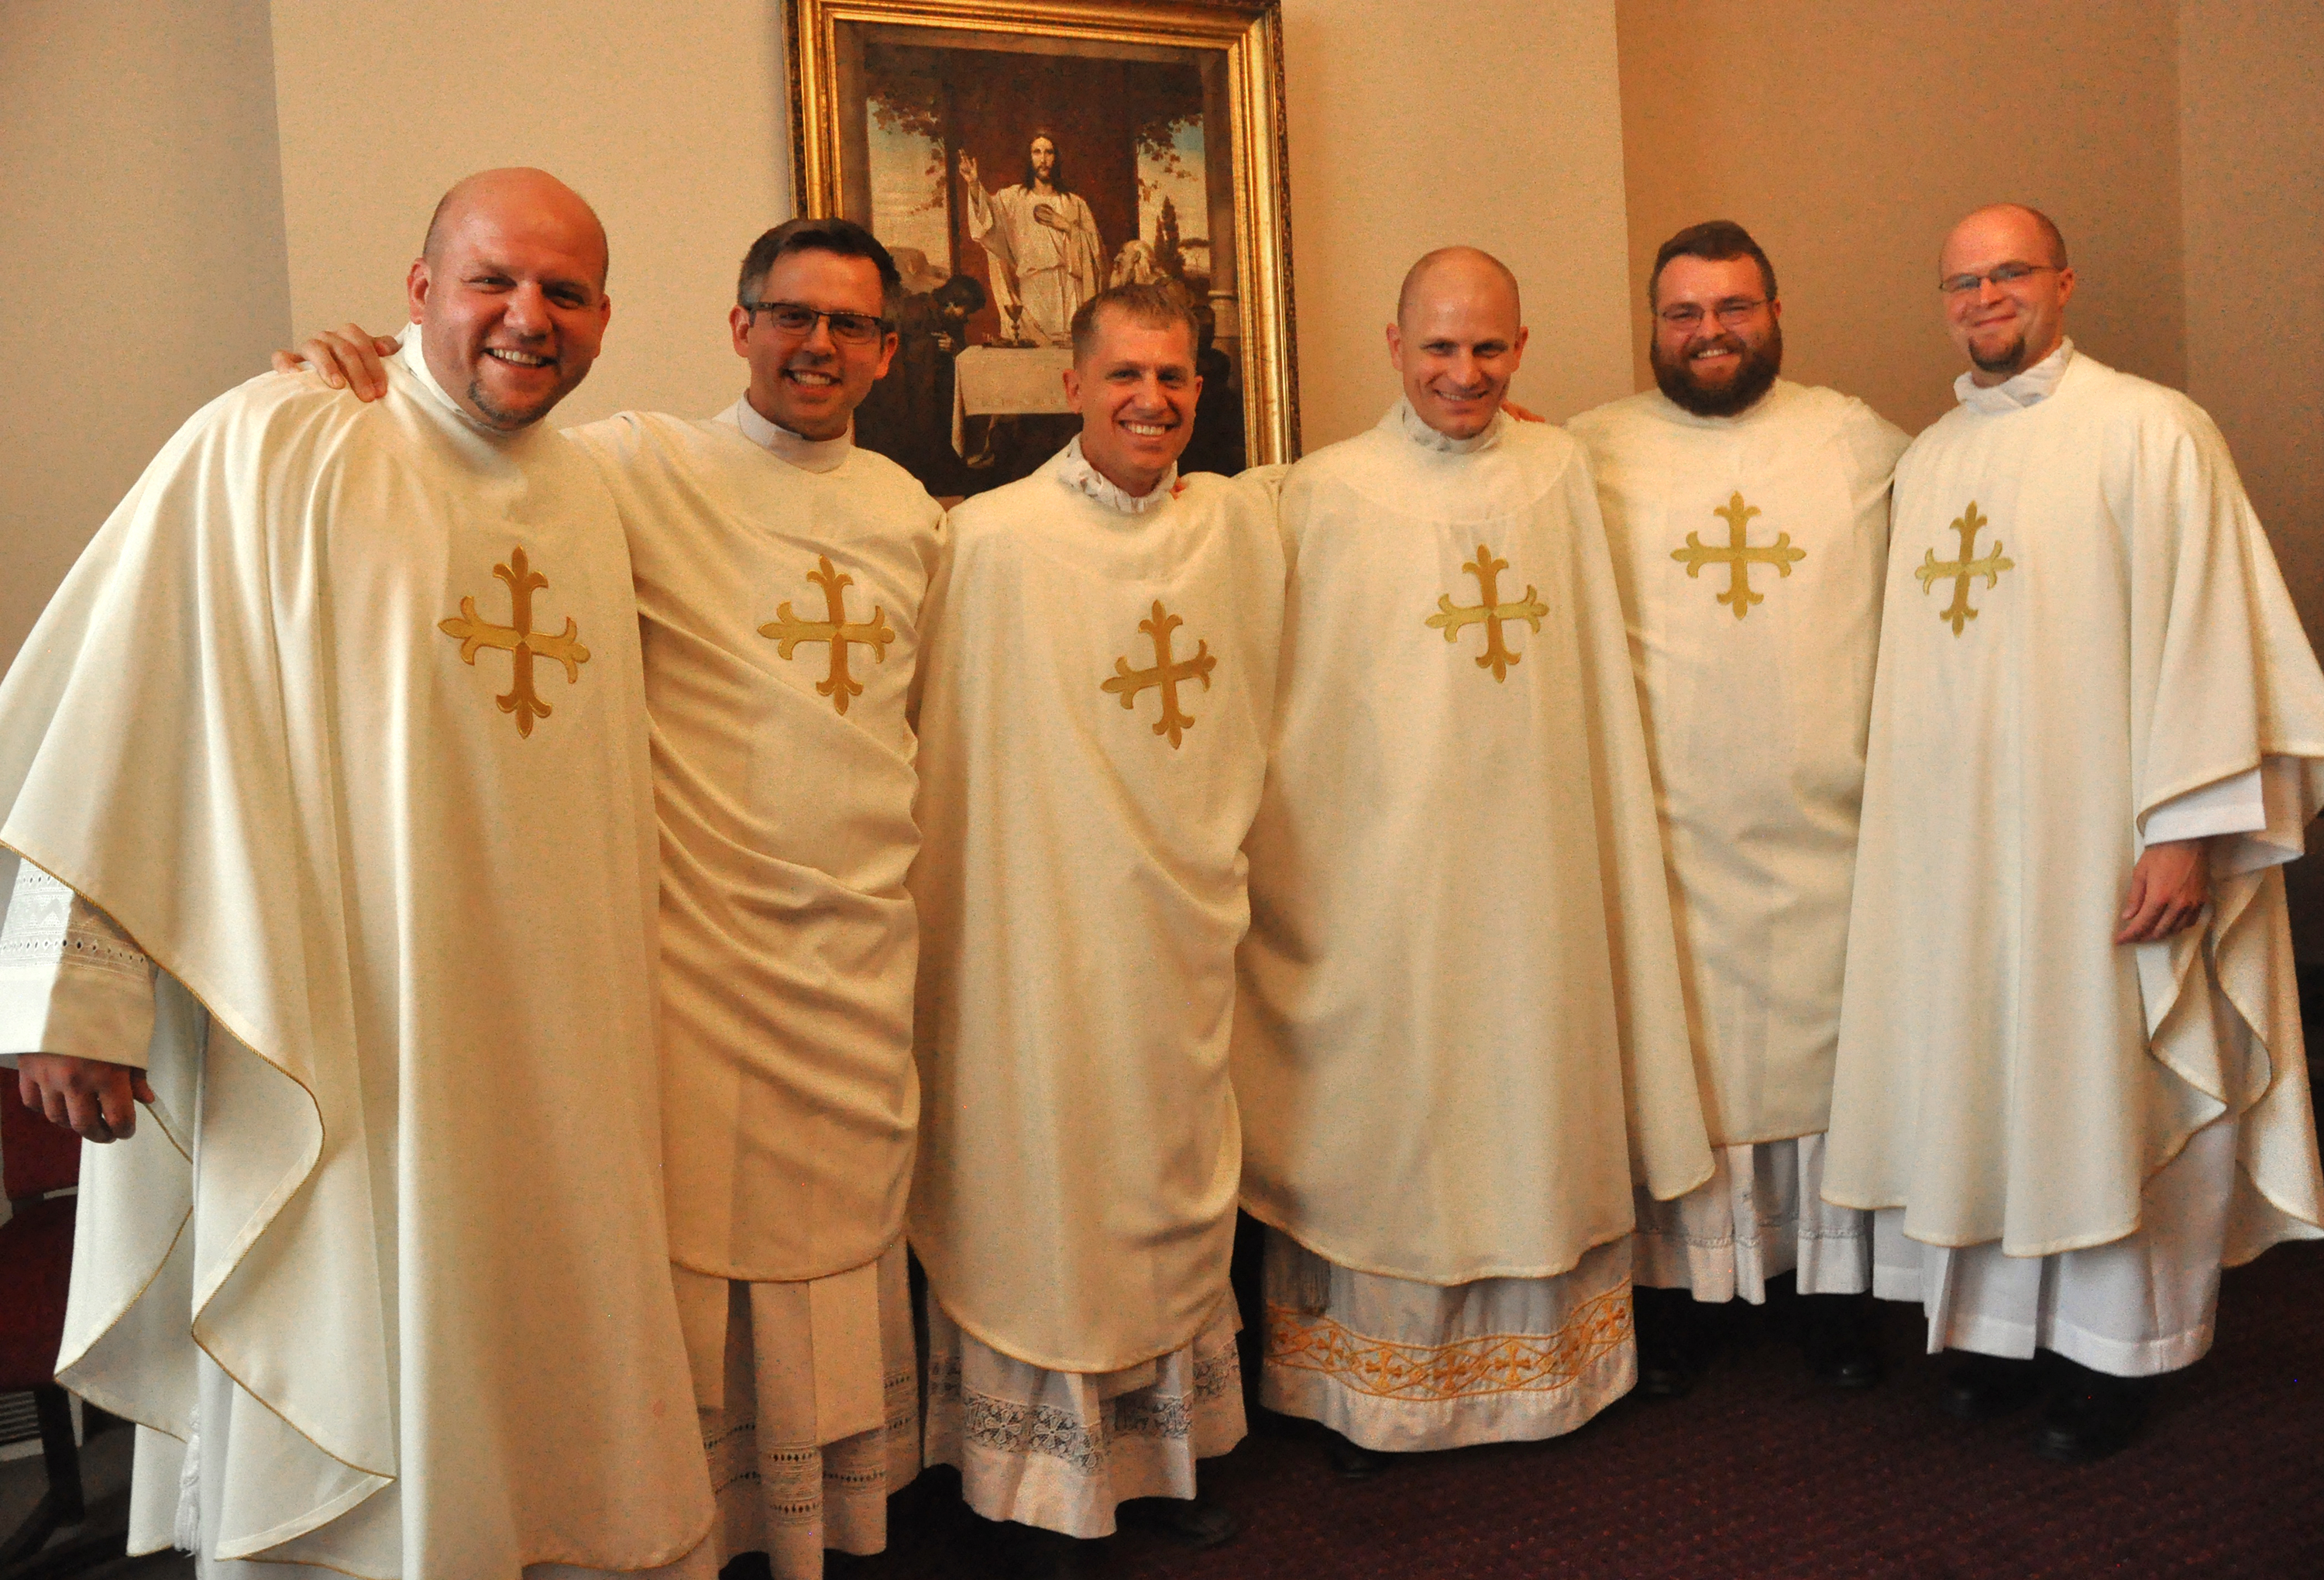 brothers who are now priests say strong family life key to